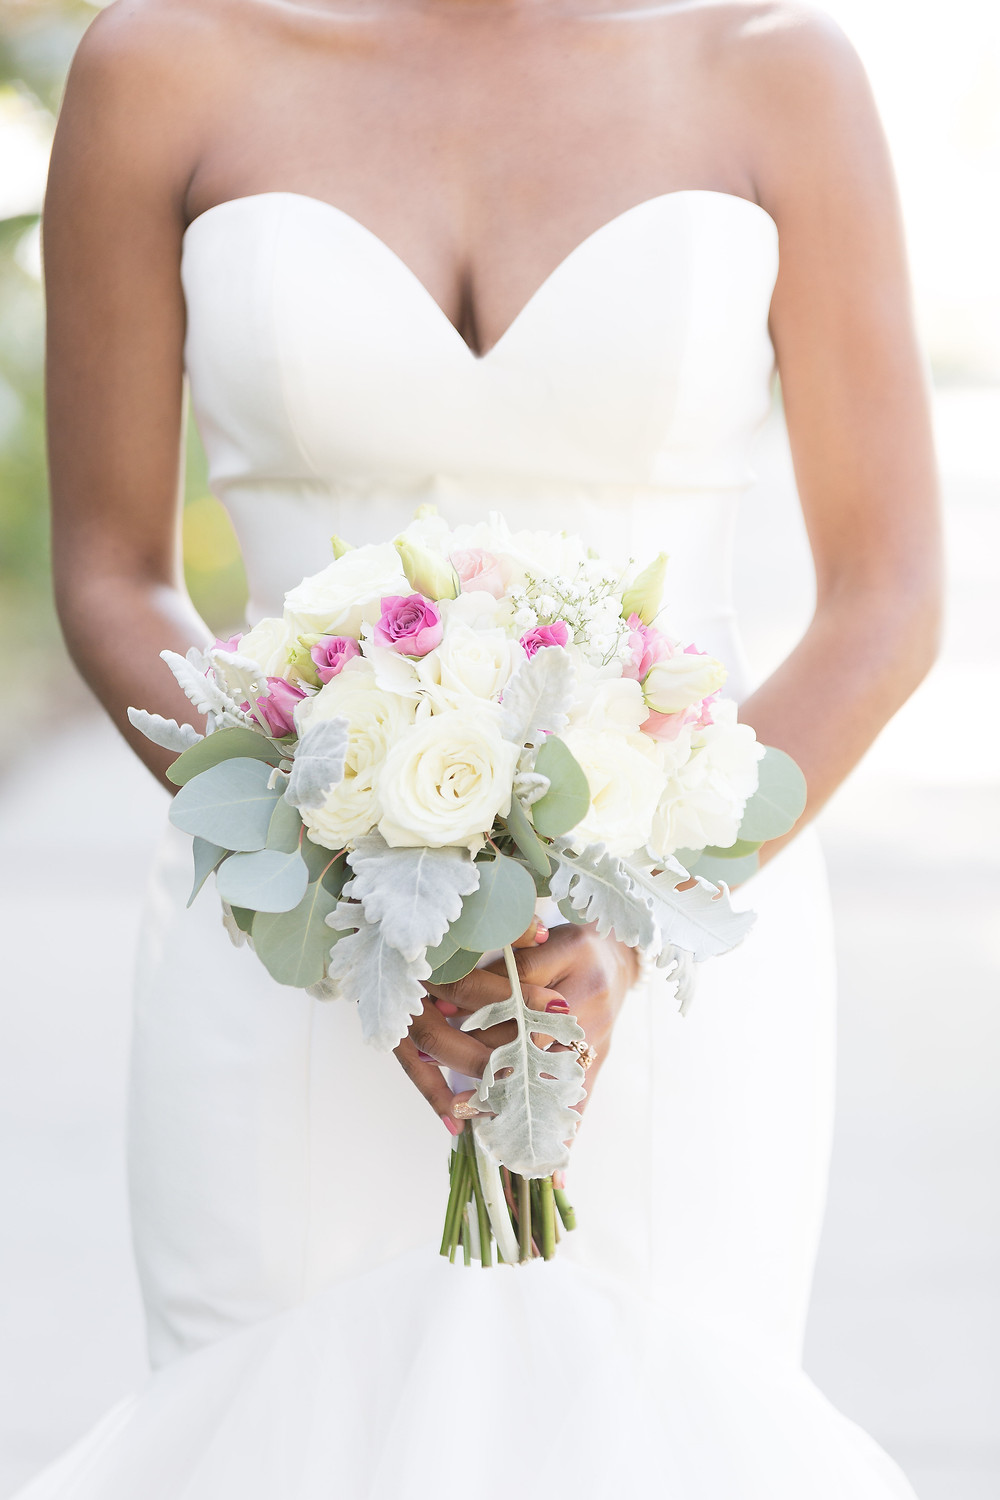 orlando wedding photographer, bridal bouquet